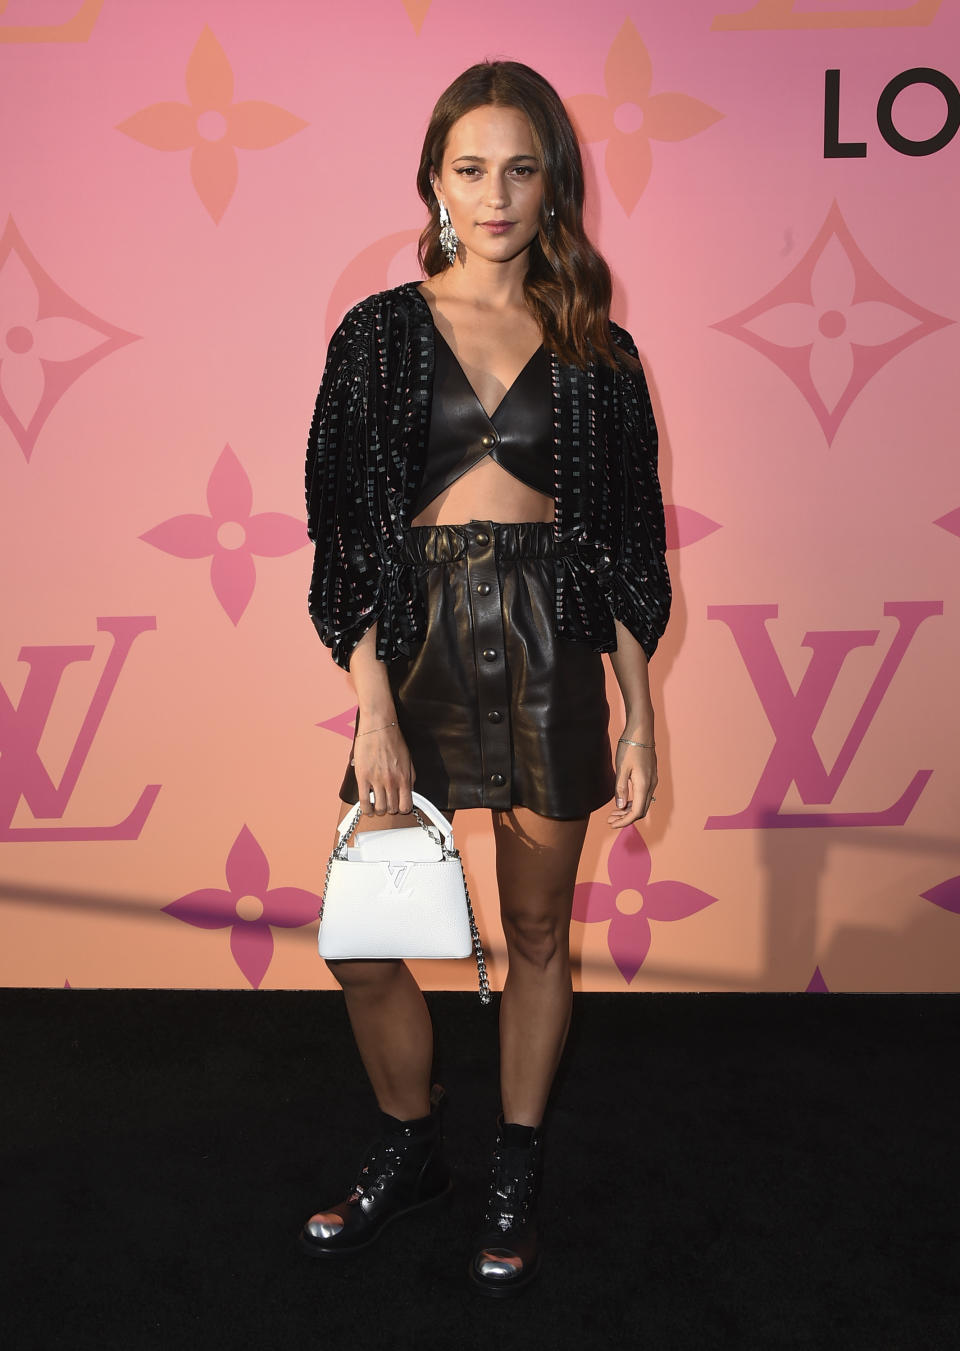 Alicia Vikander arrives at the unveiling of Louis Vuitton X - Louis Vuitton in Collaboration on Thursday, June 27, 2019, in Beverly Hills, Calif. (Photo by Jordan Strauss/Invision/AP)